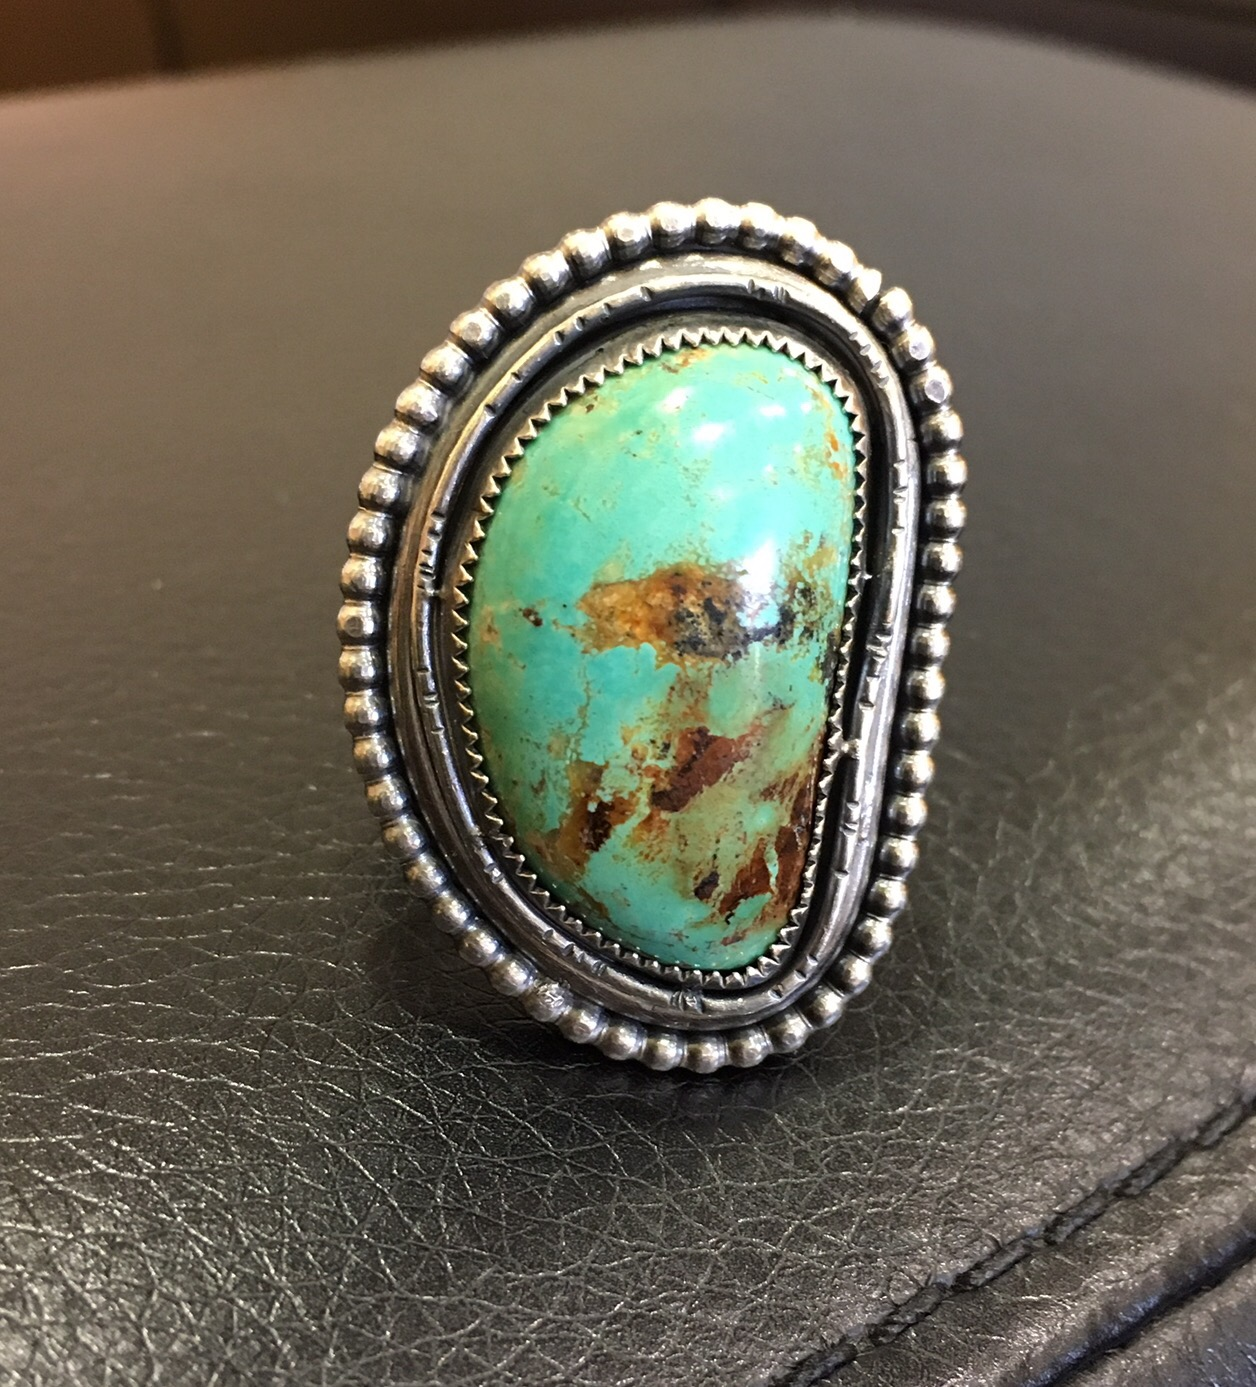 My own Lapidary work! Turquoise